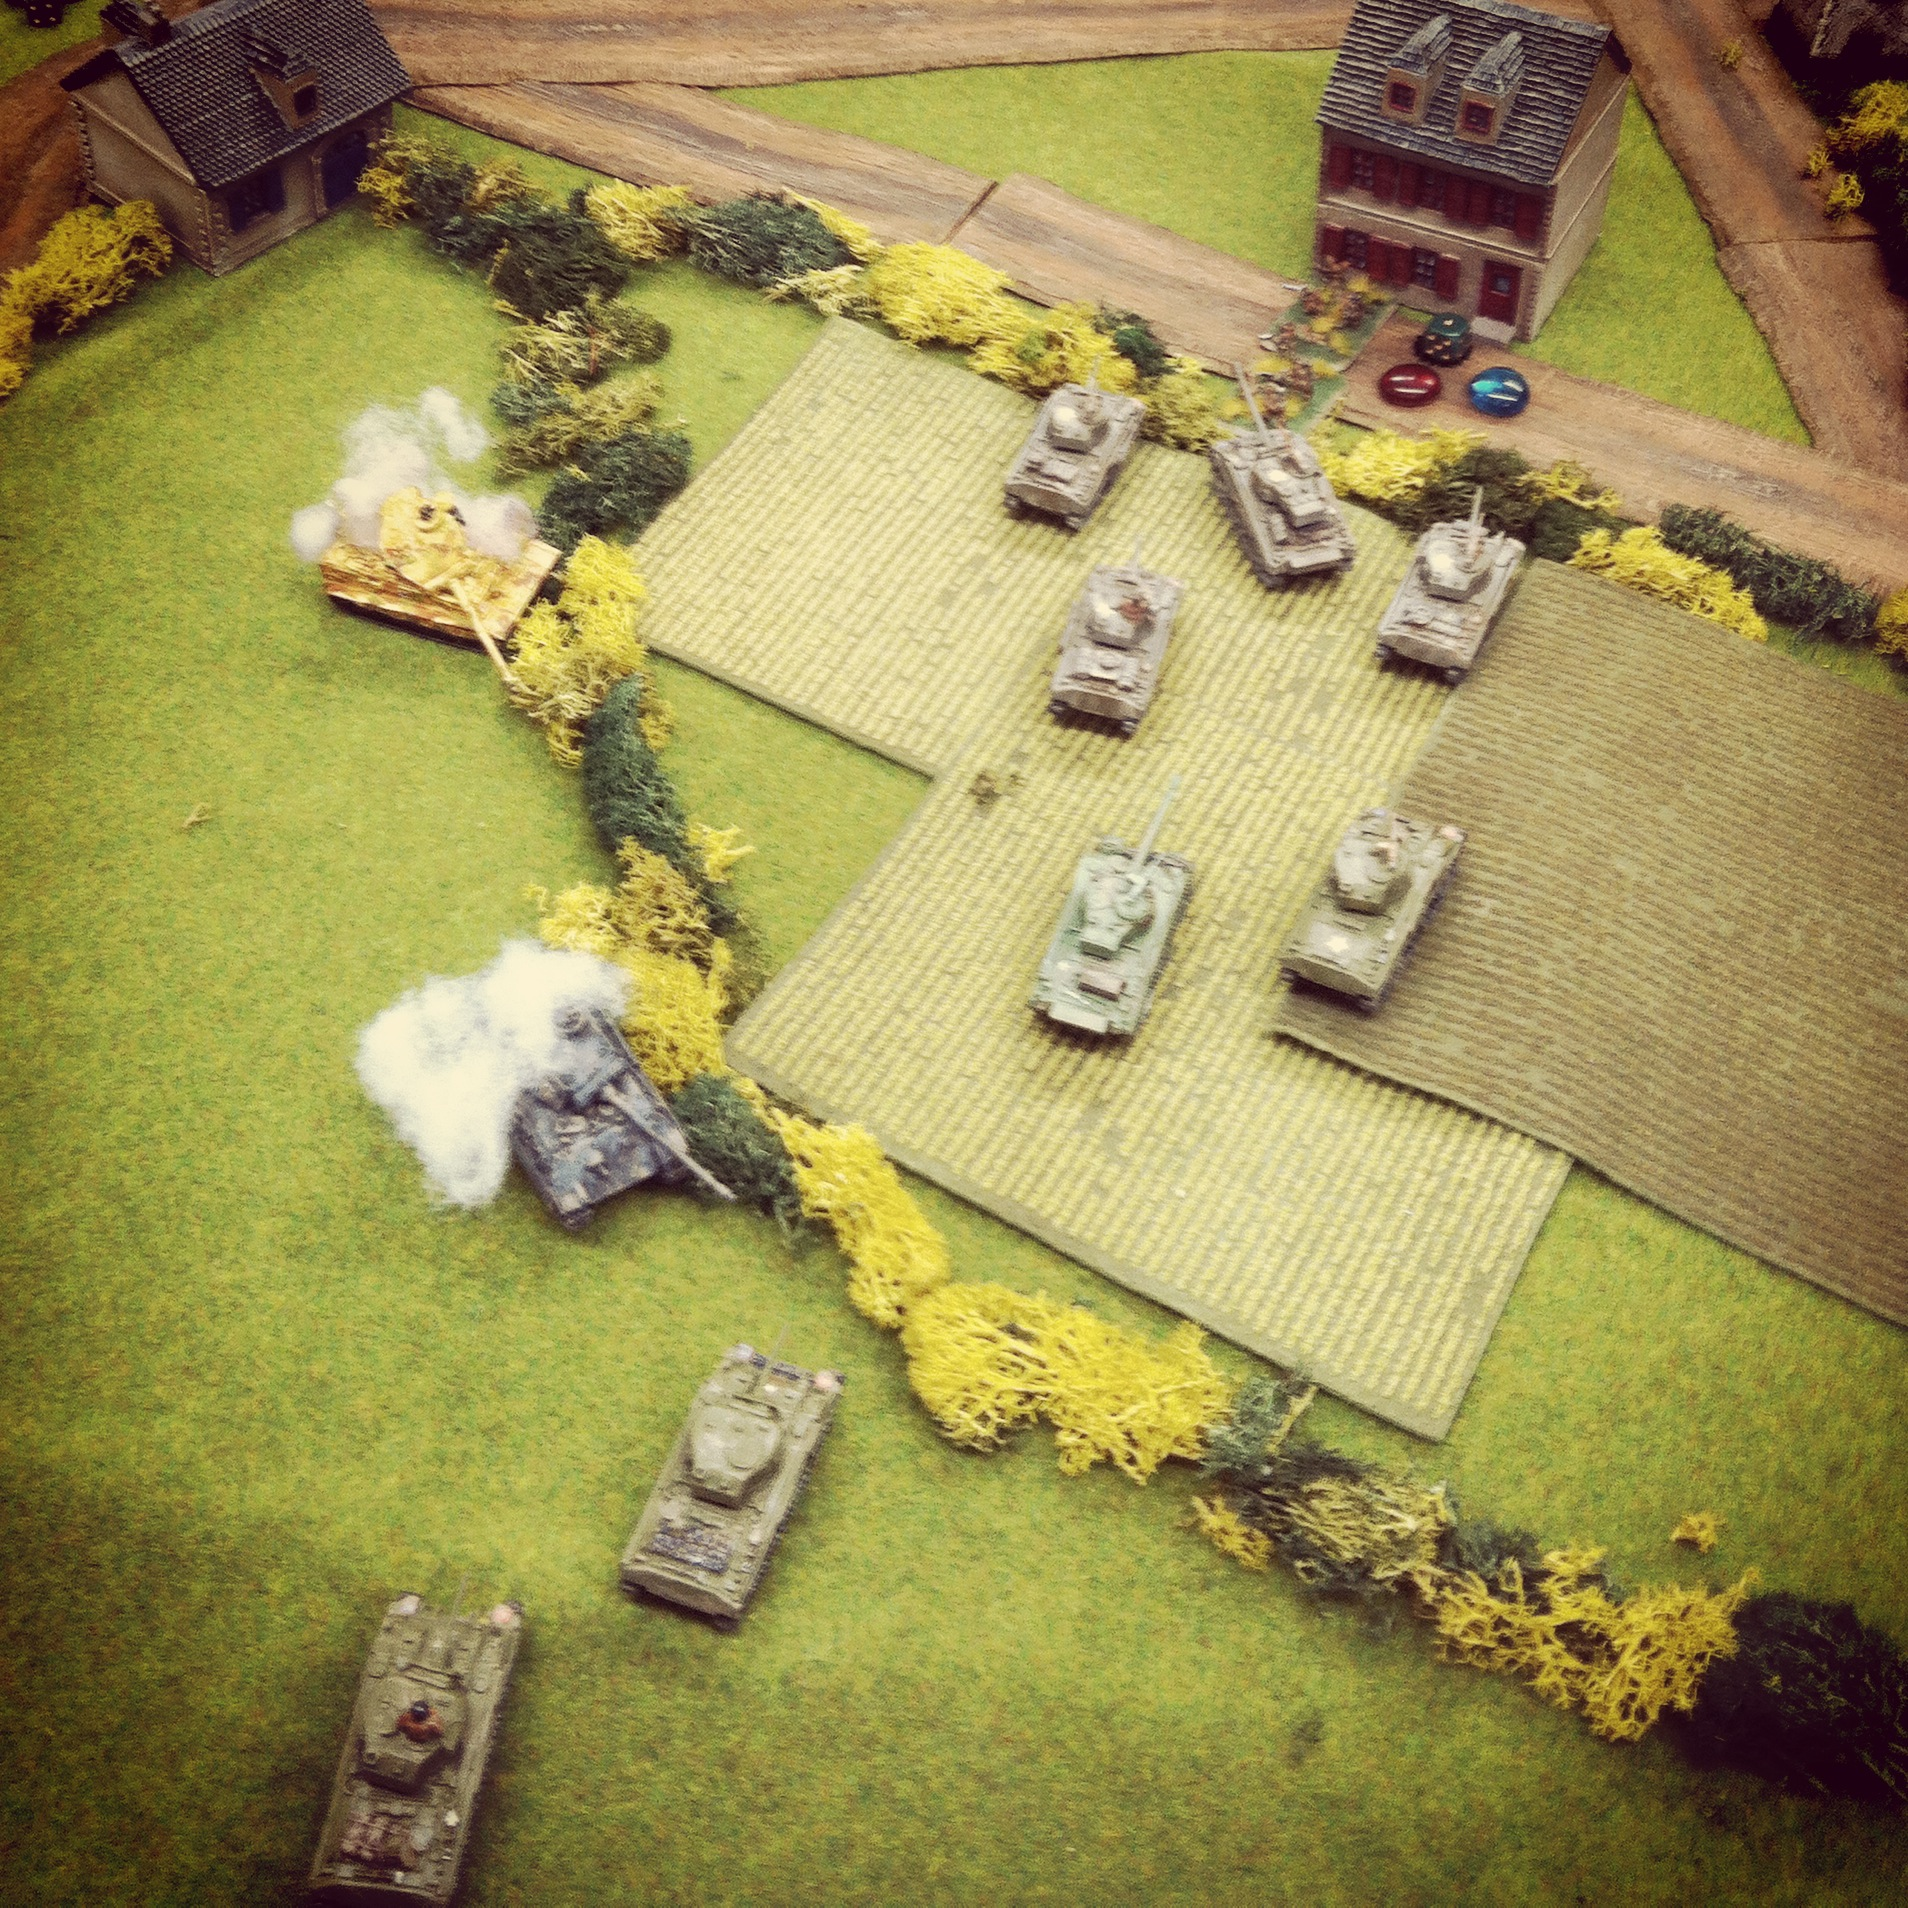 With German armor aflame, Canadian tanks roll to seize the objective